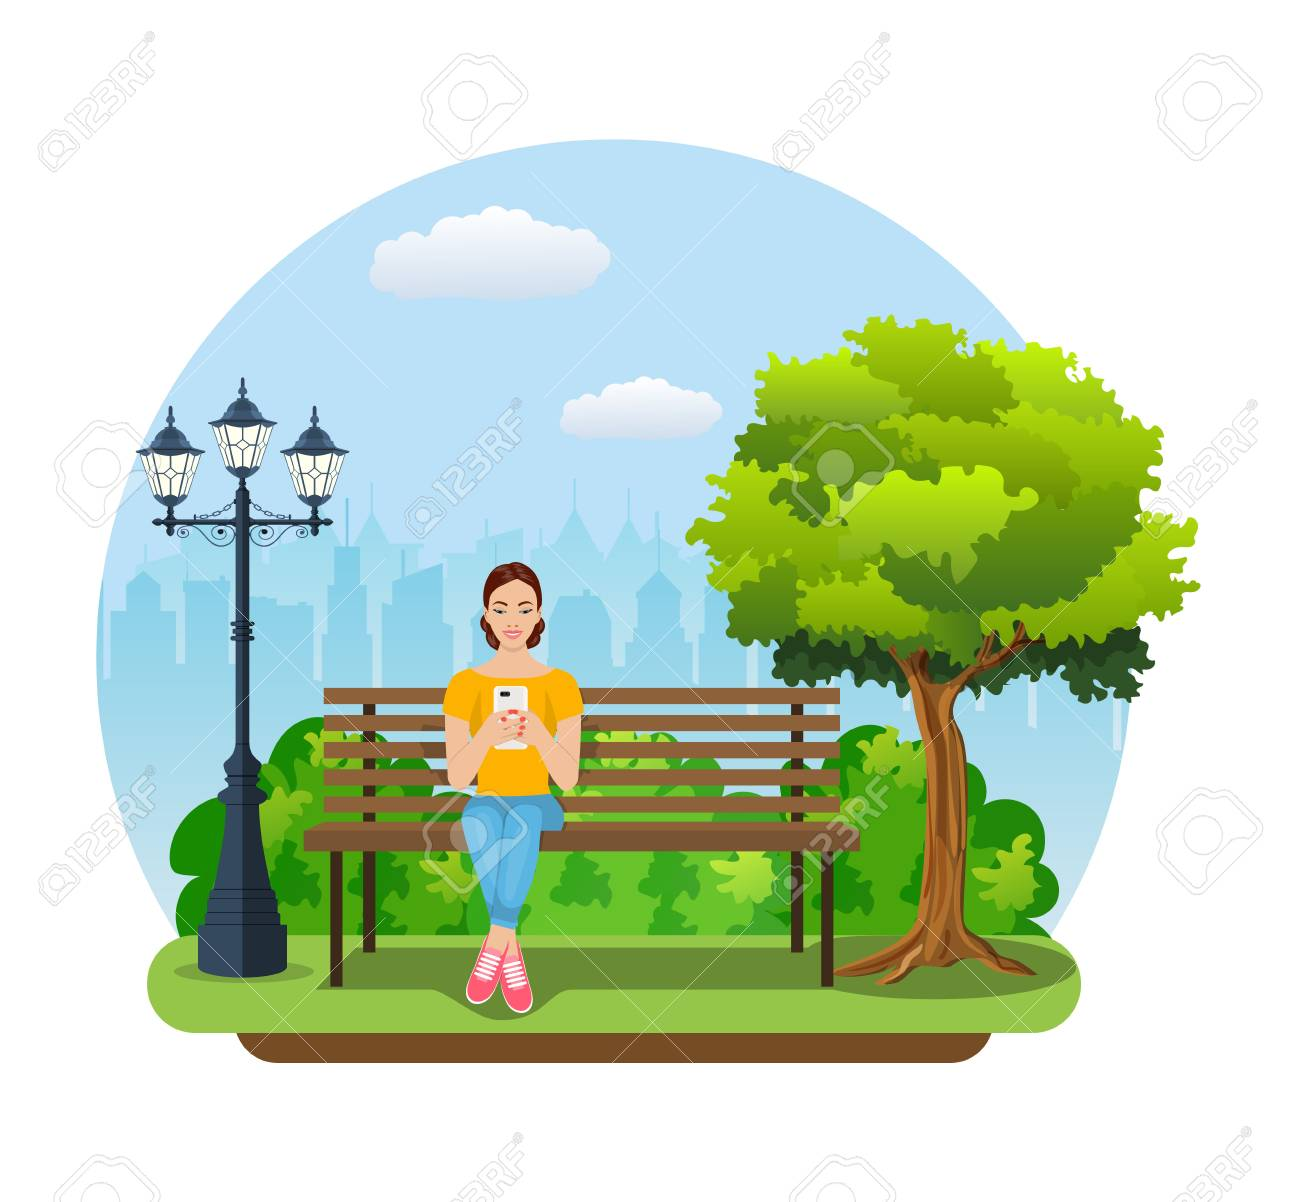 Incredible Woman Whis Smartphone Sitting On Wooden Bench In The Park Woman Ocoug Best Dining Table And Chair Ideas Images Ocougorg